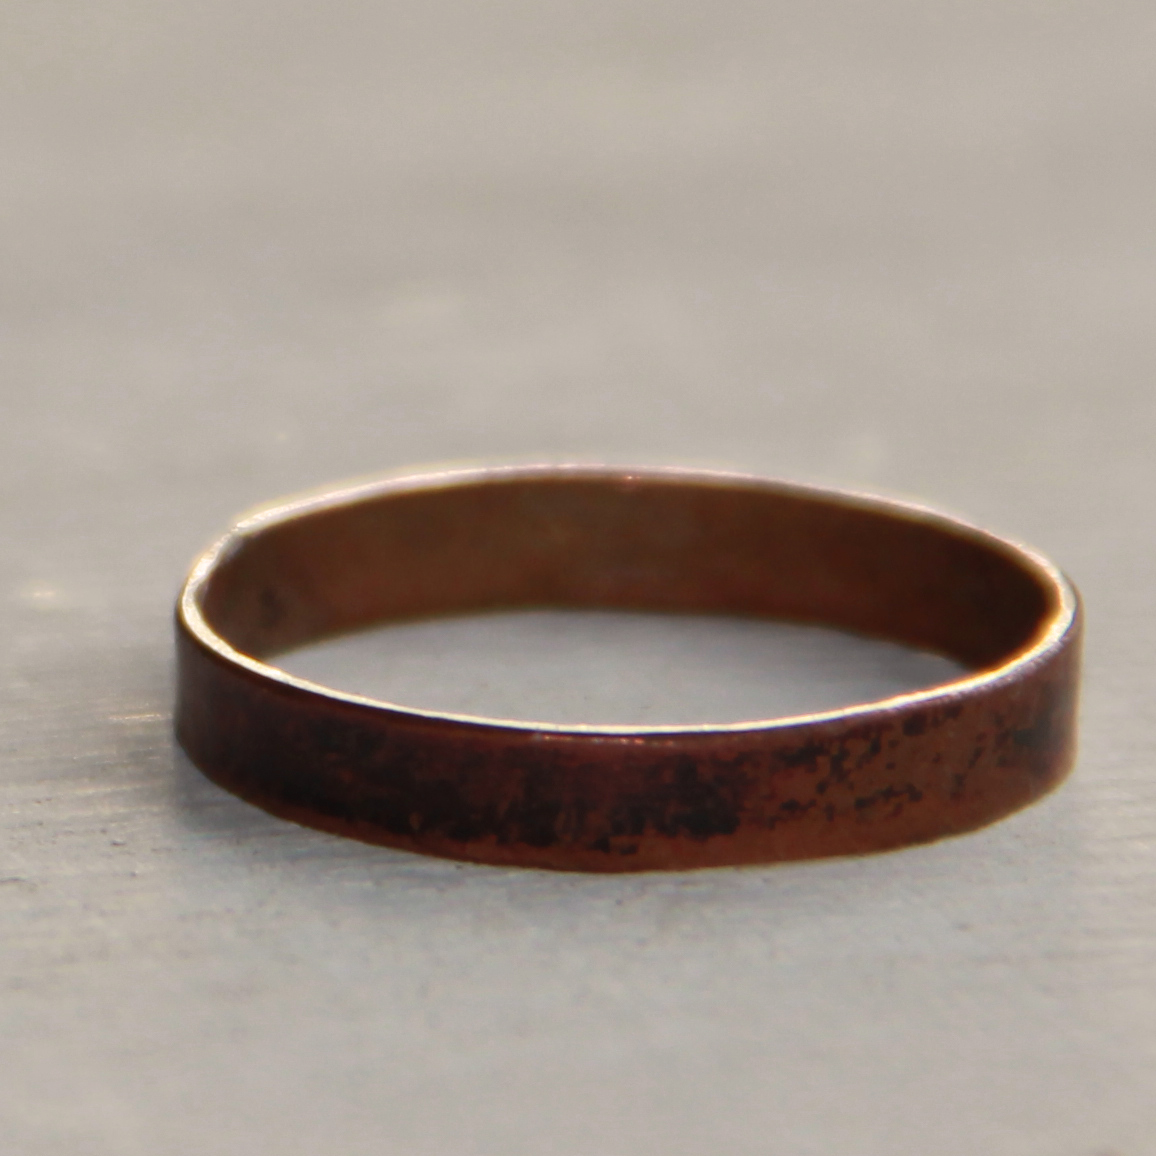 Hammered Copper Ring · Embergrass Jewelry · Online Store. Celebrity Anniversary Engagement Rings. First Baby Engagement Rings. Amavida Engagement Rings. Victorian Rings. Band Style Name Wedding Rings. Sophisticated Engagement Rings. Bold And The Beautiful Engagement Rings. Stainless Wedding Rings